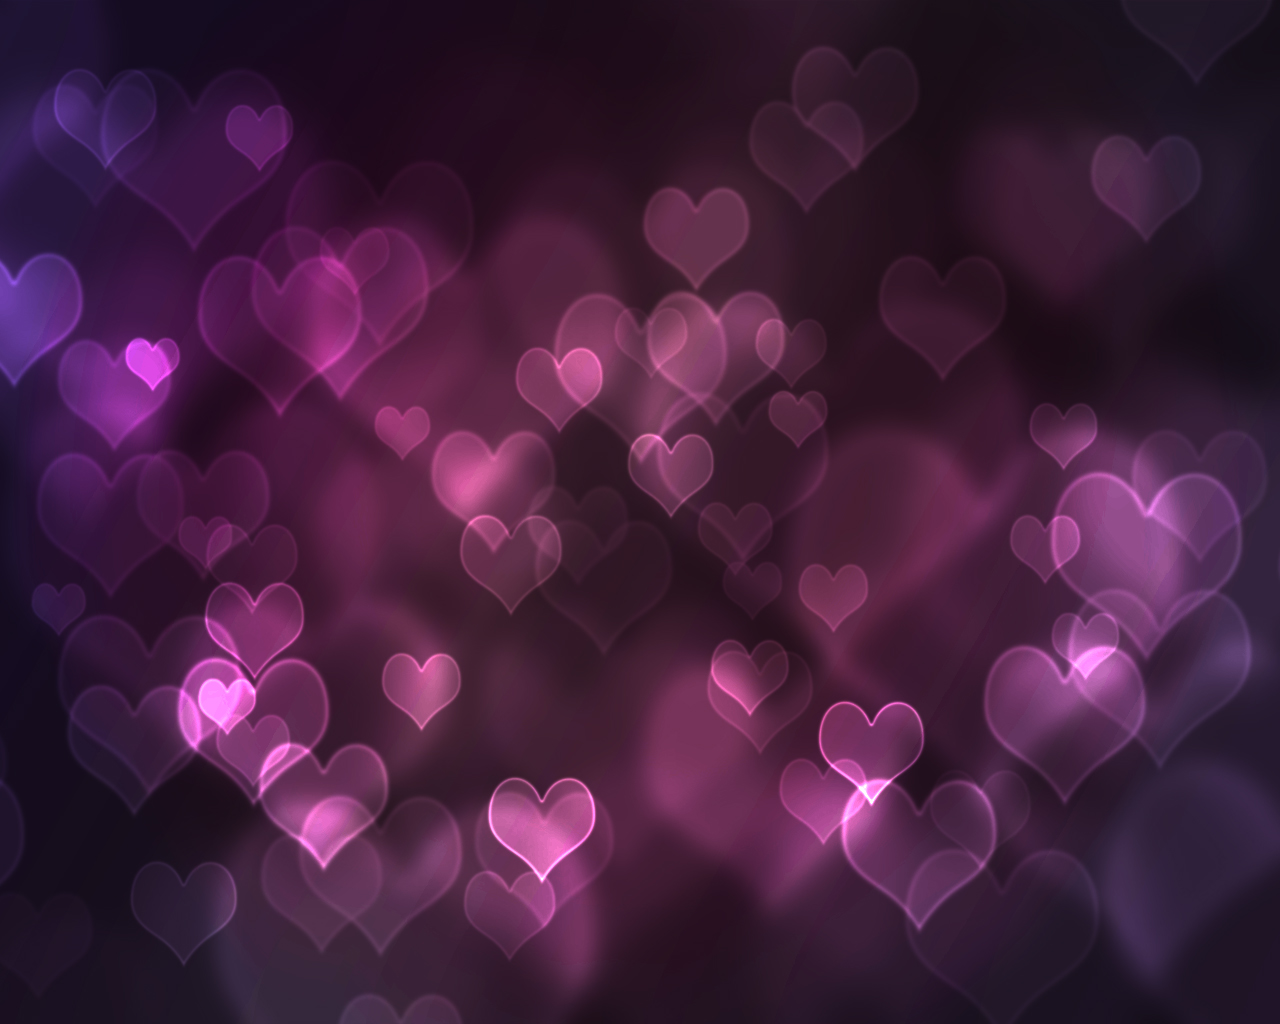 828   2 years ago - ReblogPurple Hearts And Stars Background